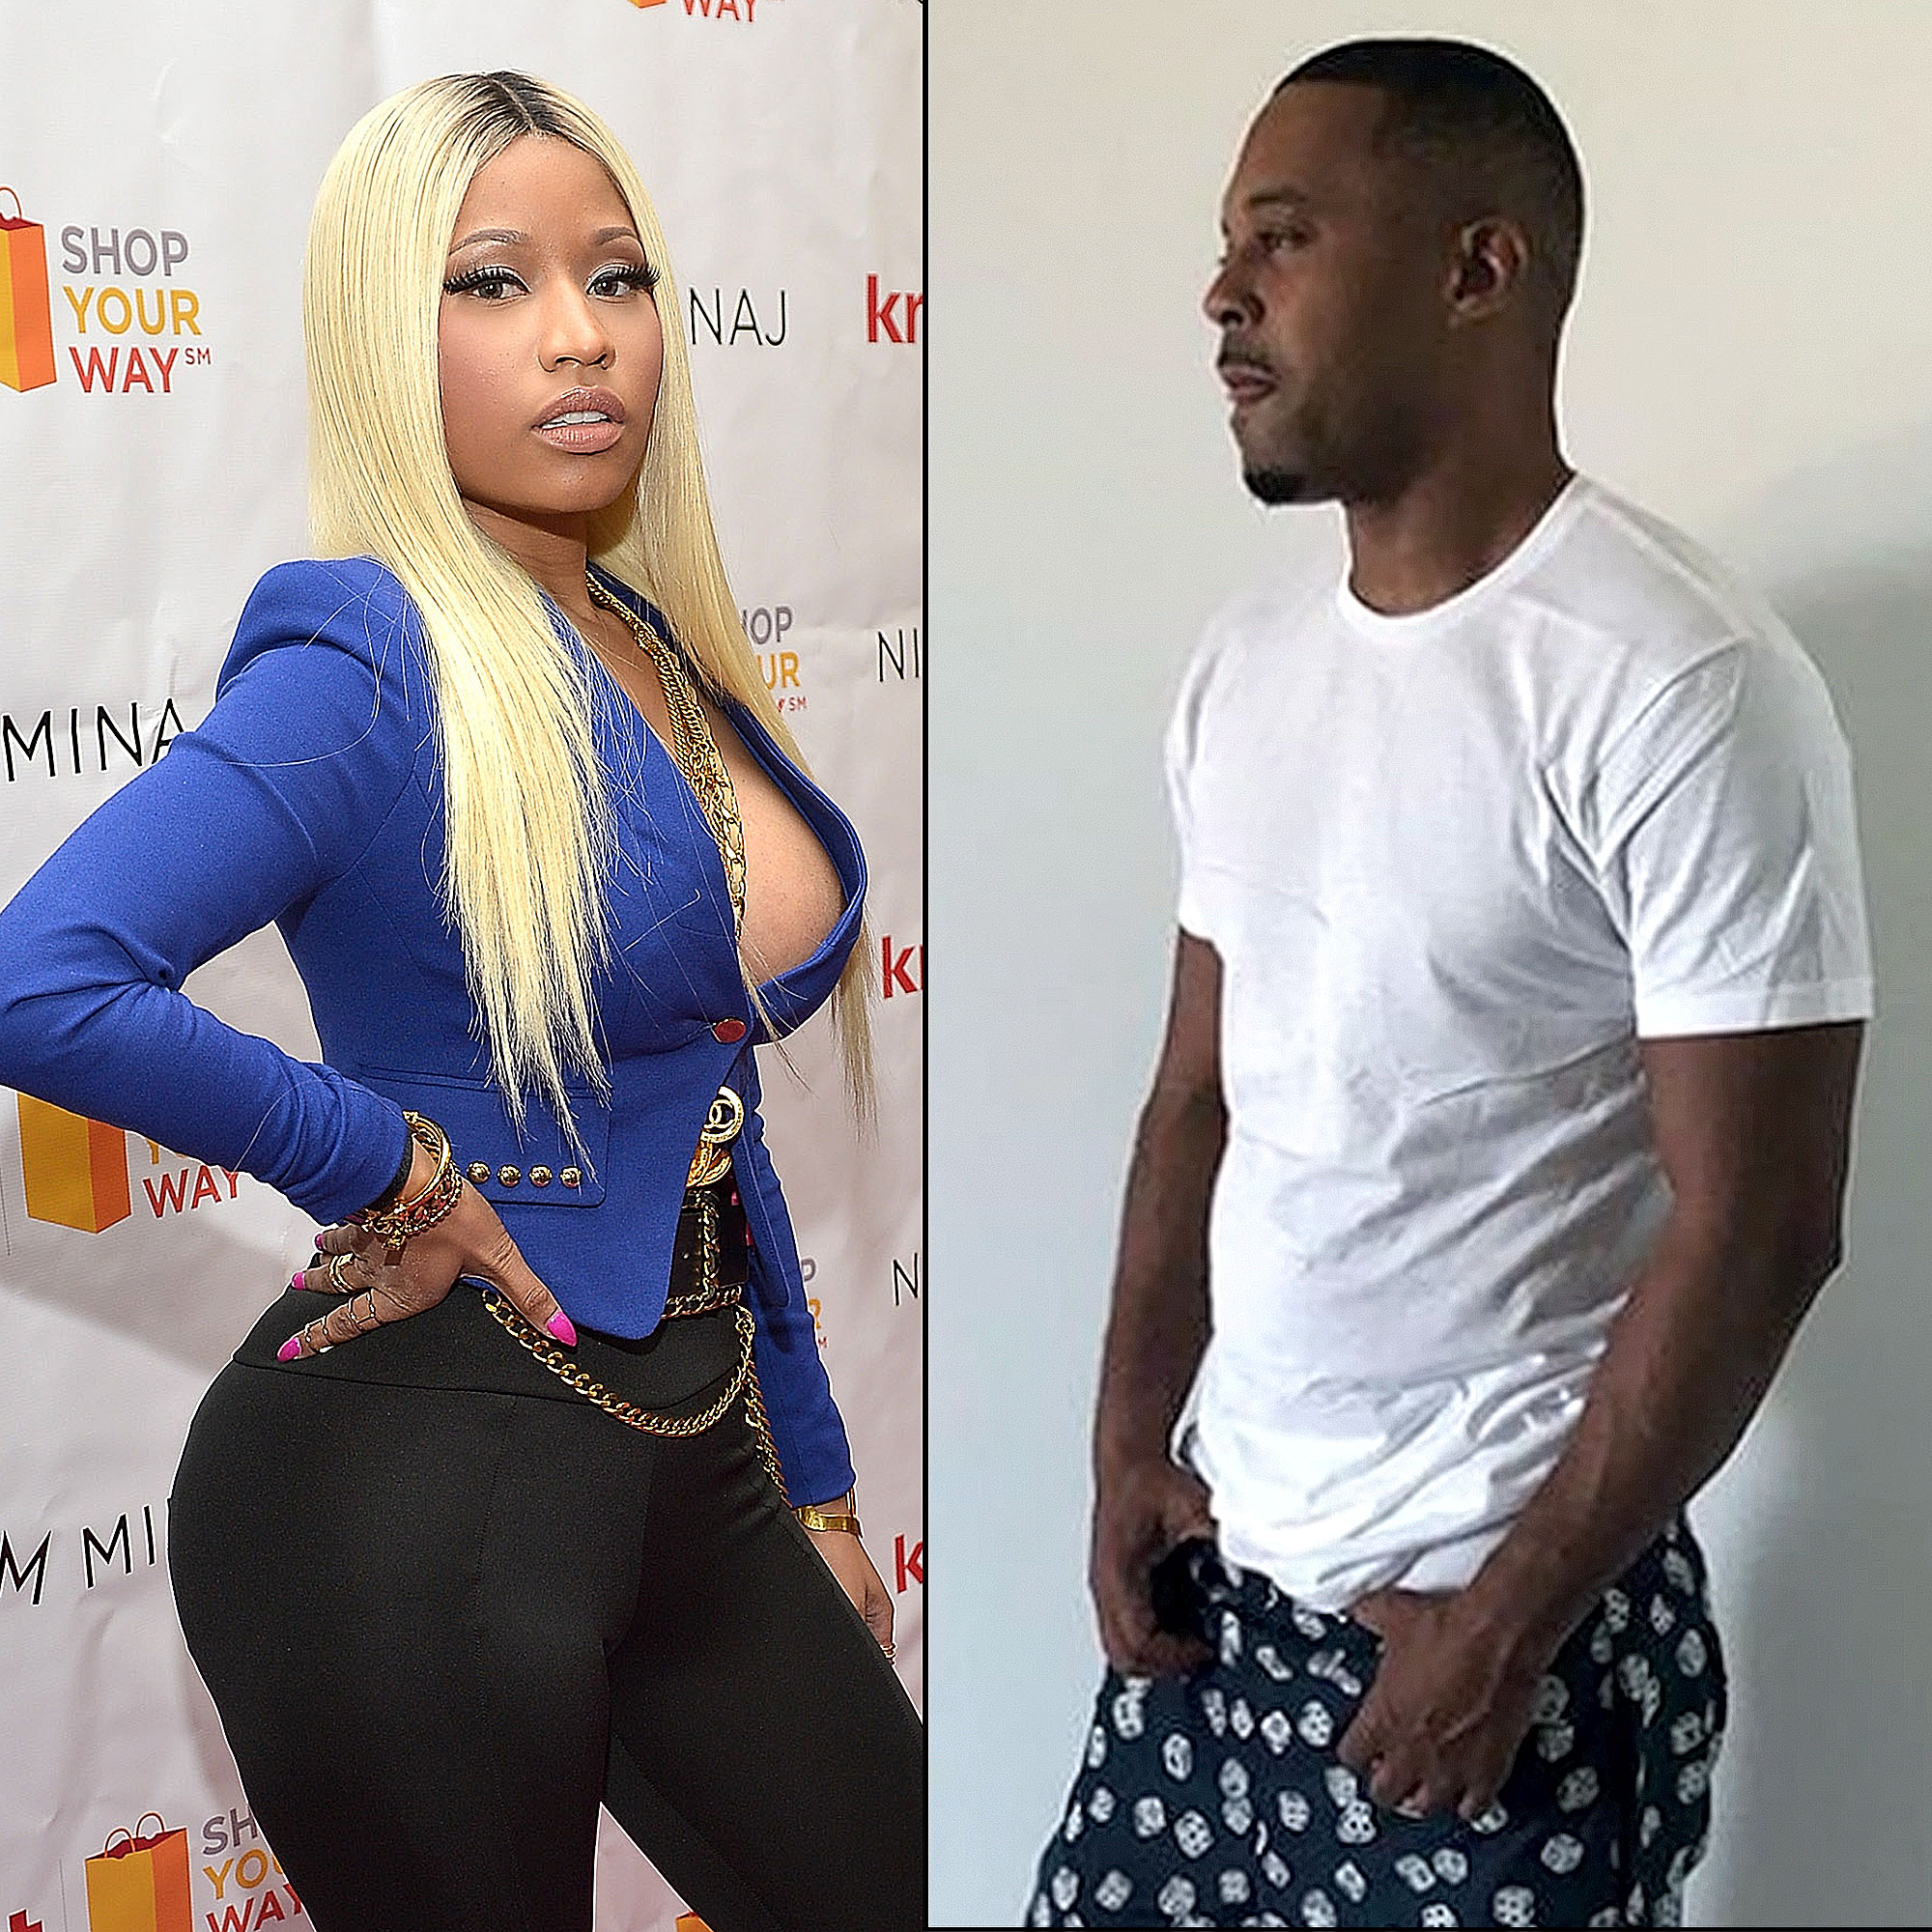 Nicki Minaj Dated Sex Offender Kenneth Petty Years Before Their Recent Rekindling